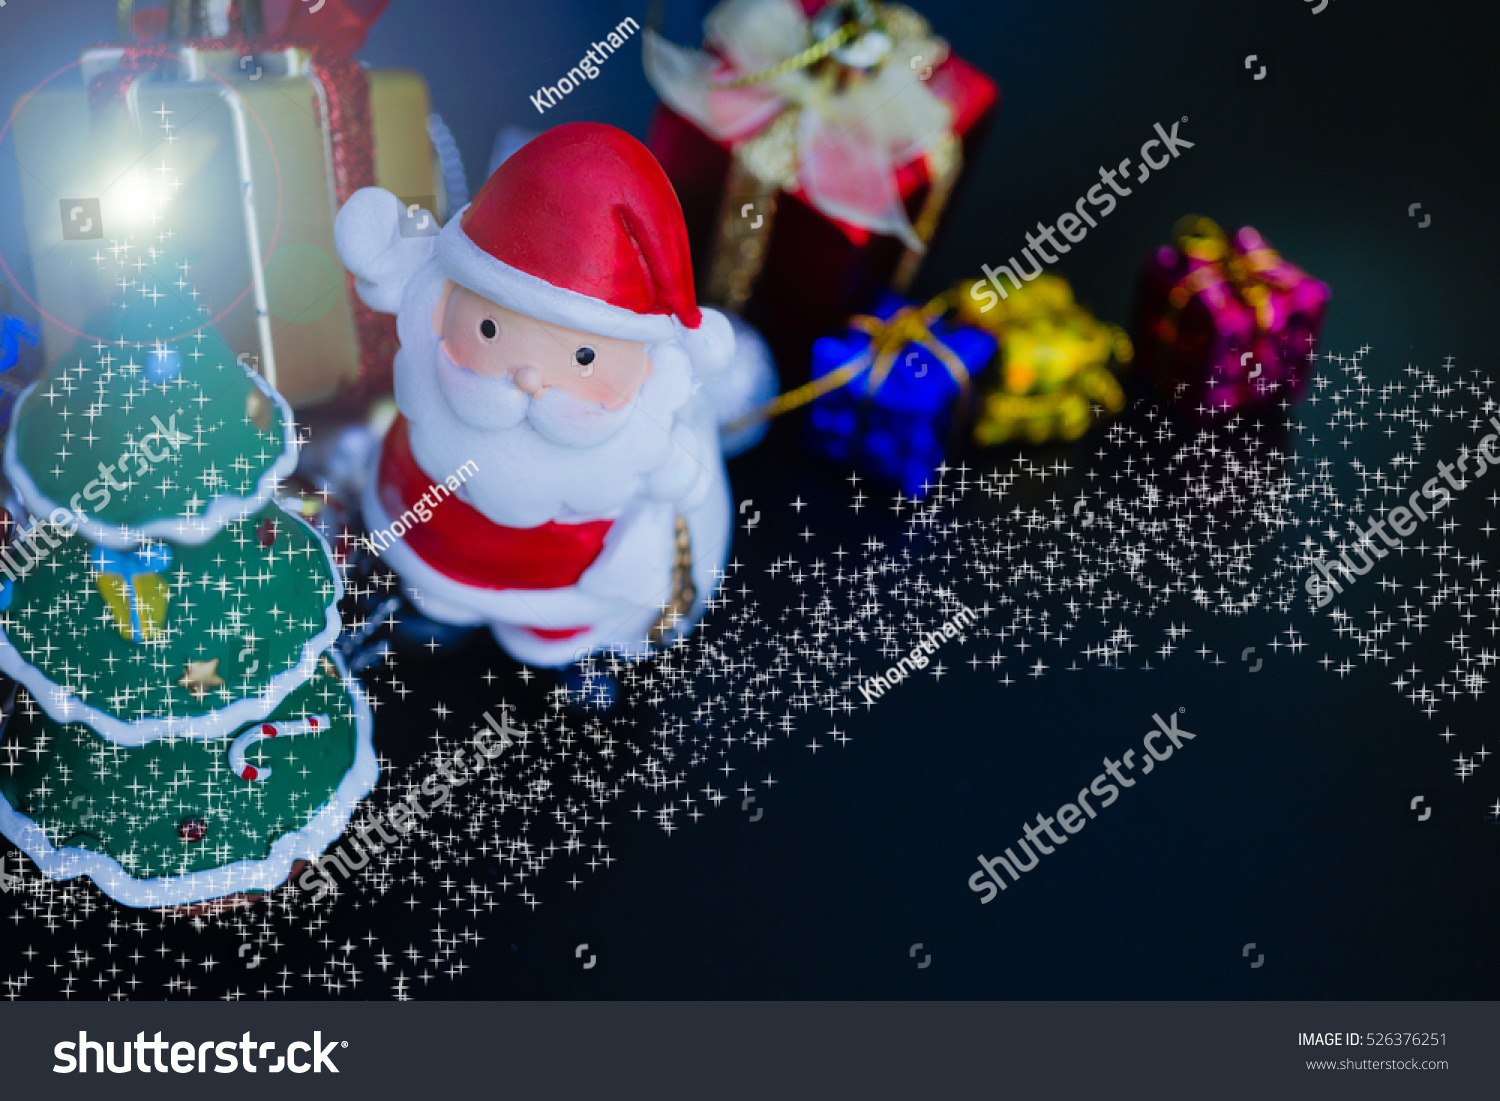 Colorful Christmas Characters Decorations Using Wallpaper